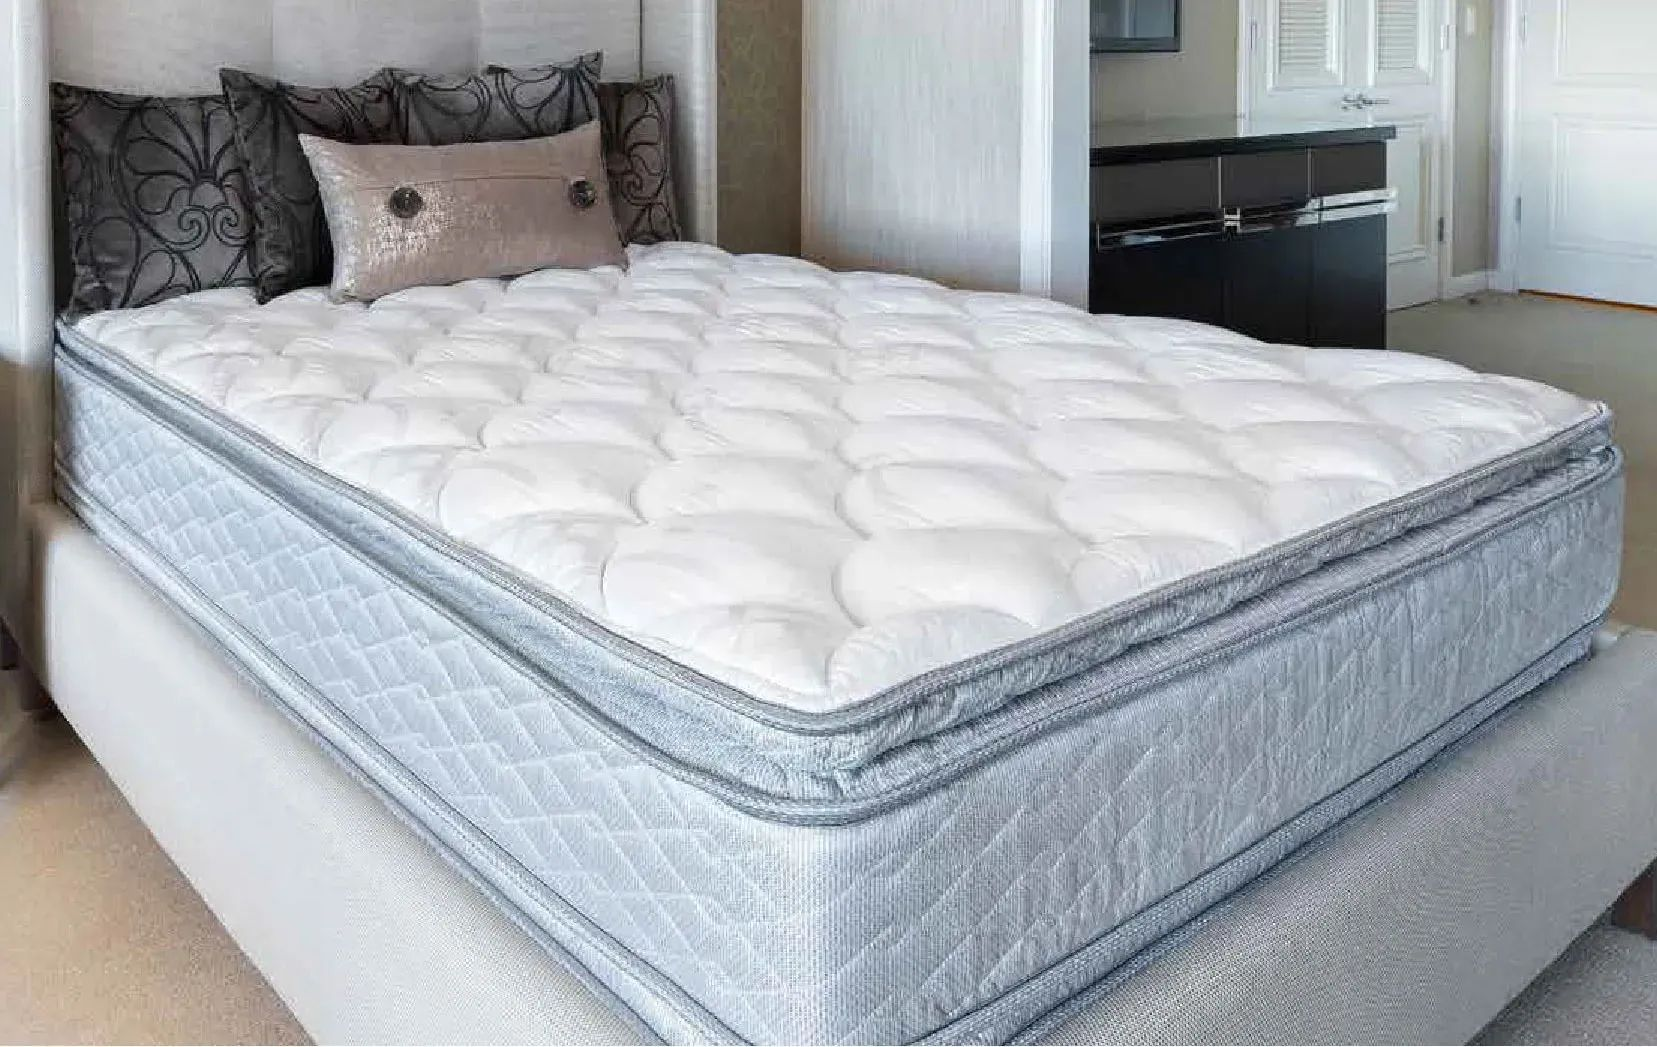 cal king serta perfect sleeper hotel congressional suite supreme ii euro pillow top double sided 13 inch mattress 2 pack